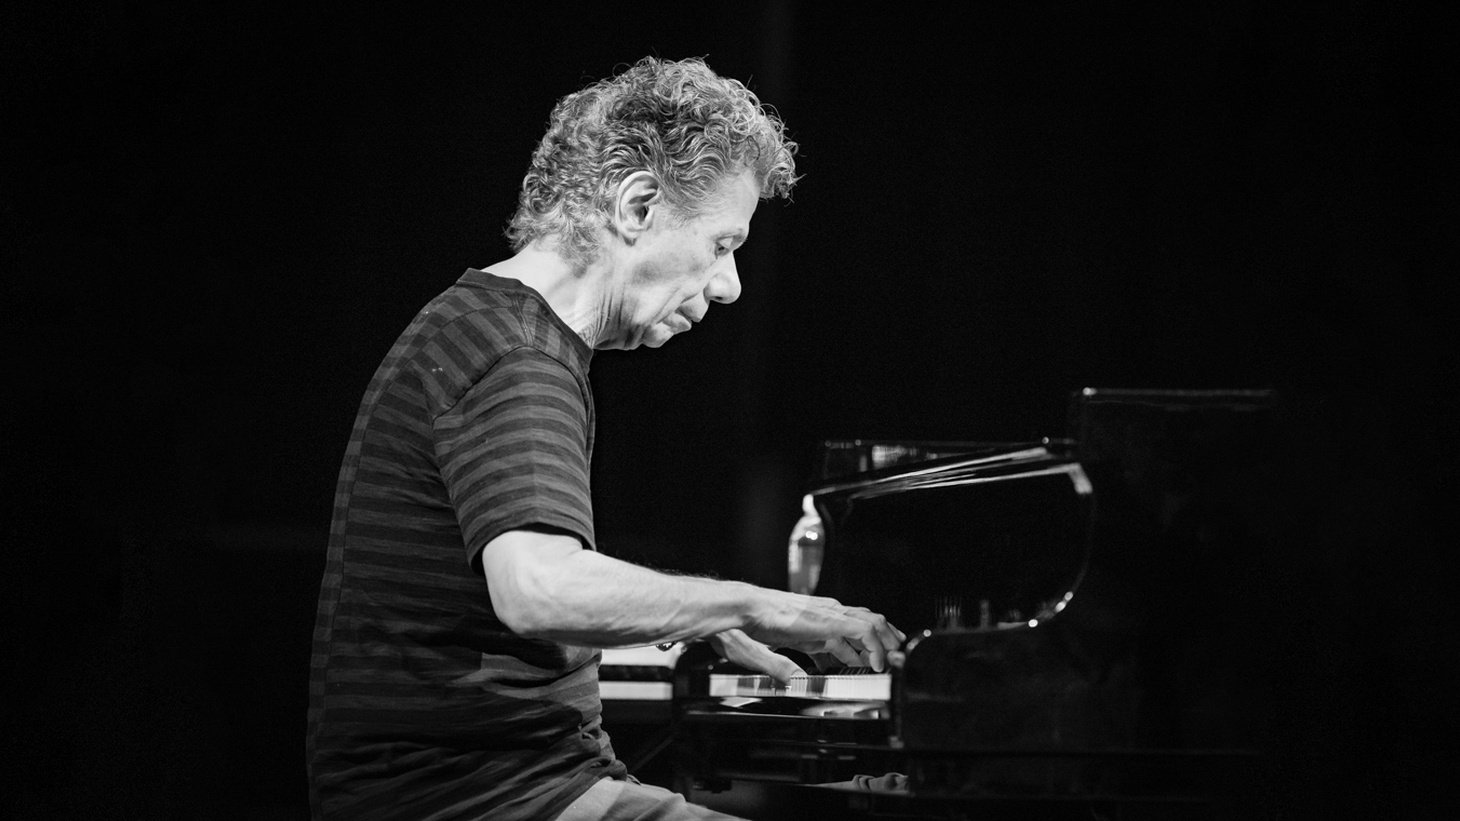 Chick Corea with Chick Corea's Akoustic Band in Kongsberg Musikkteater. The concert was part of Kongsberg Jazzfestival and took place on 06. July 2018 in Kongsberg.